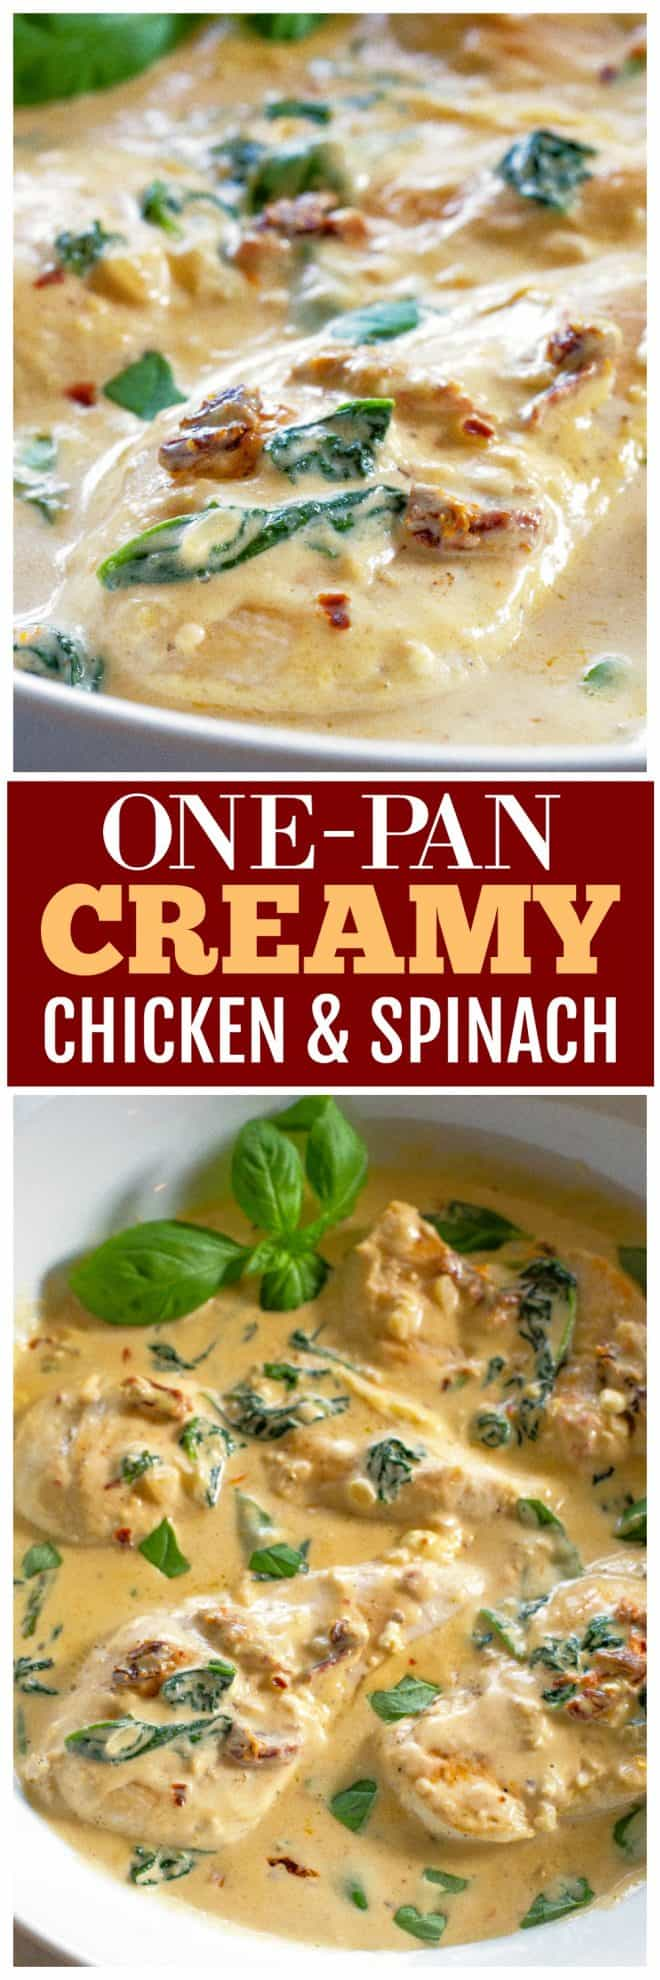 One-Pan Creamy Chicken and Spinach